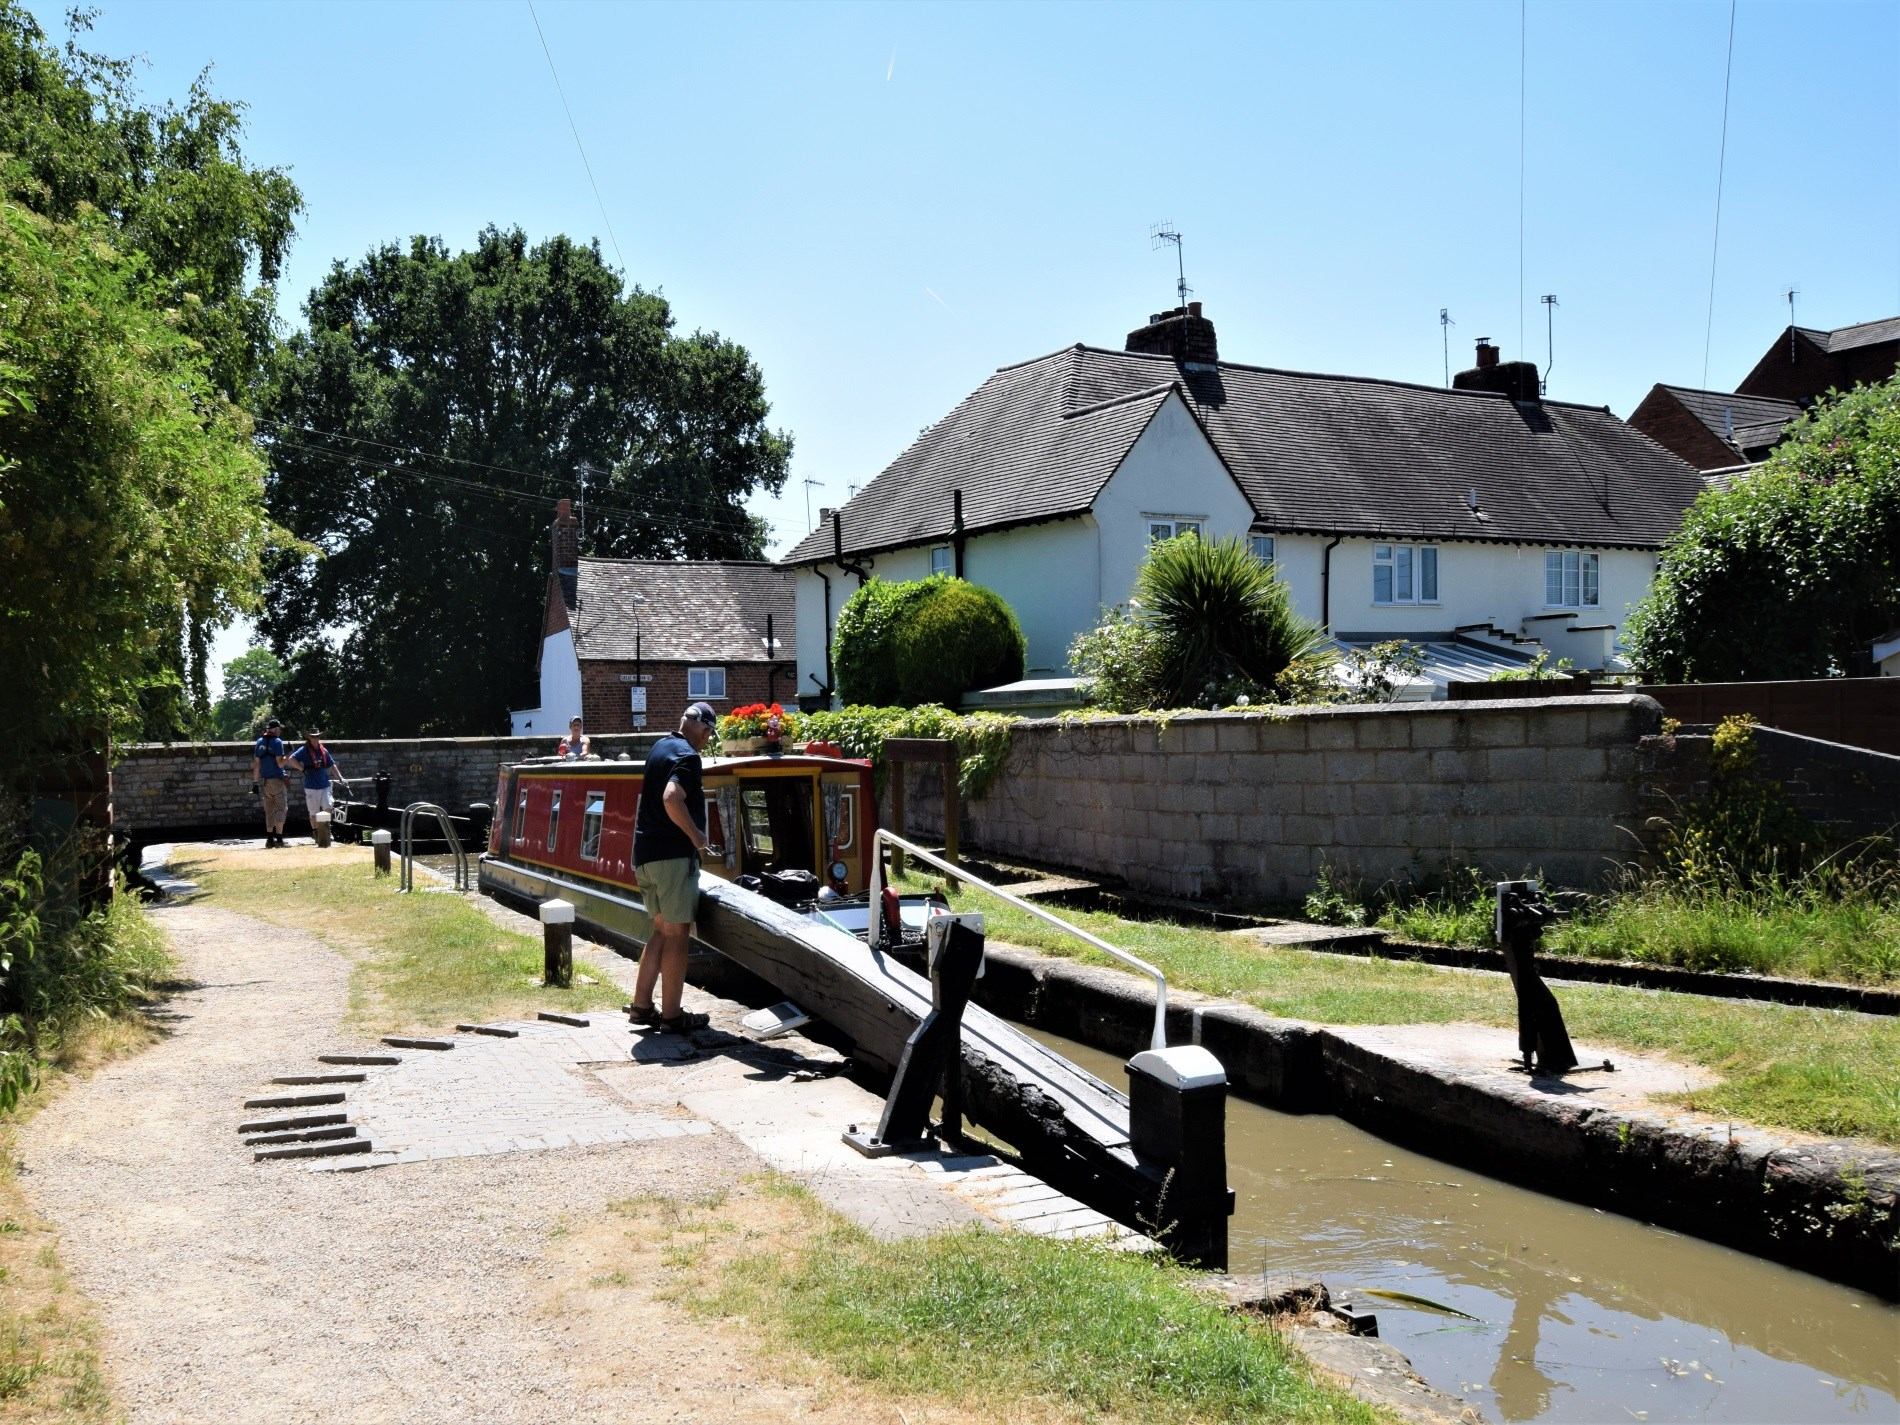 Watch the narrow boats on the canal nearby